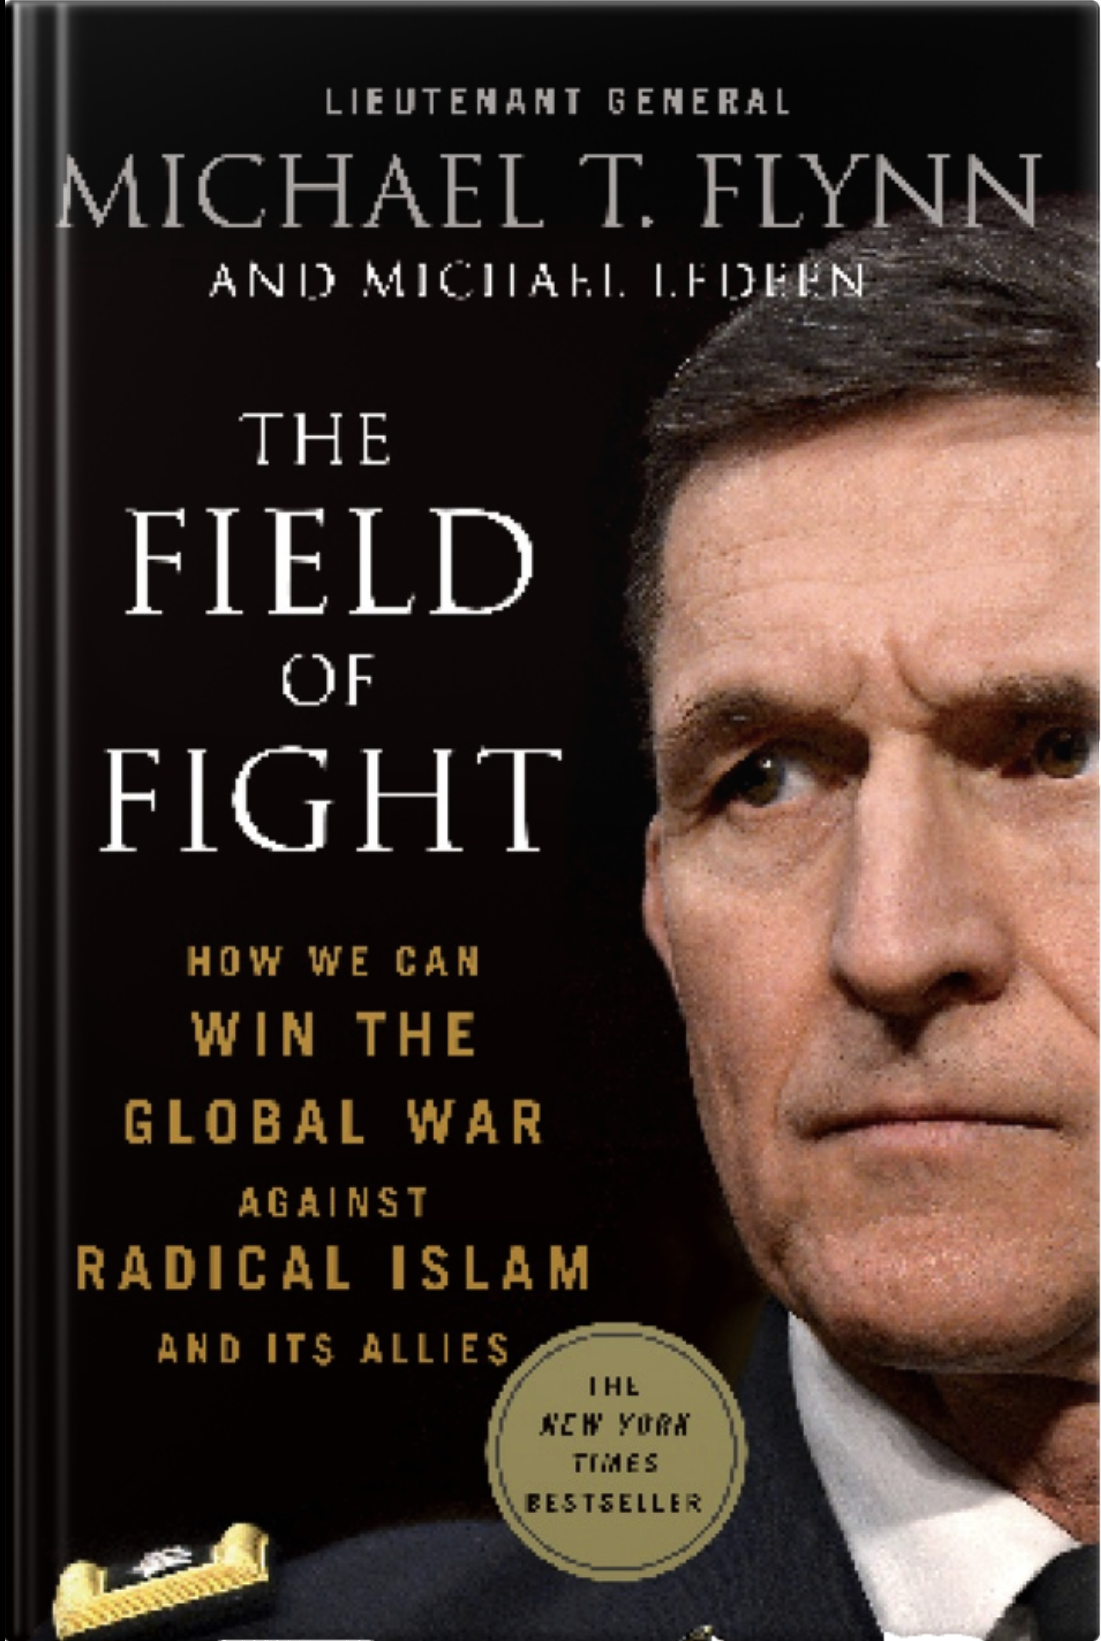 The Field of Fight: How We Can Win the Global War Against Radical Islam and its Allies - Lieutenant General (Ret.) Michael T. Flynn & Michael Ledeen